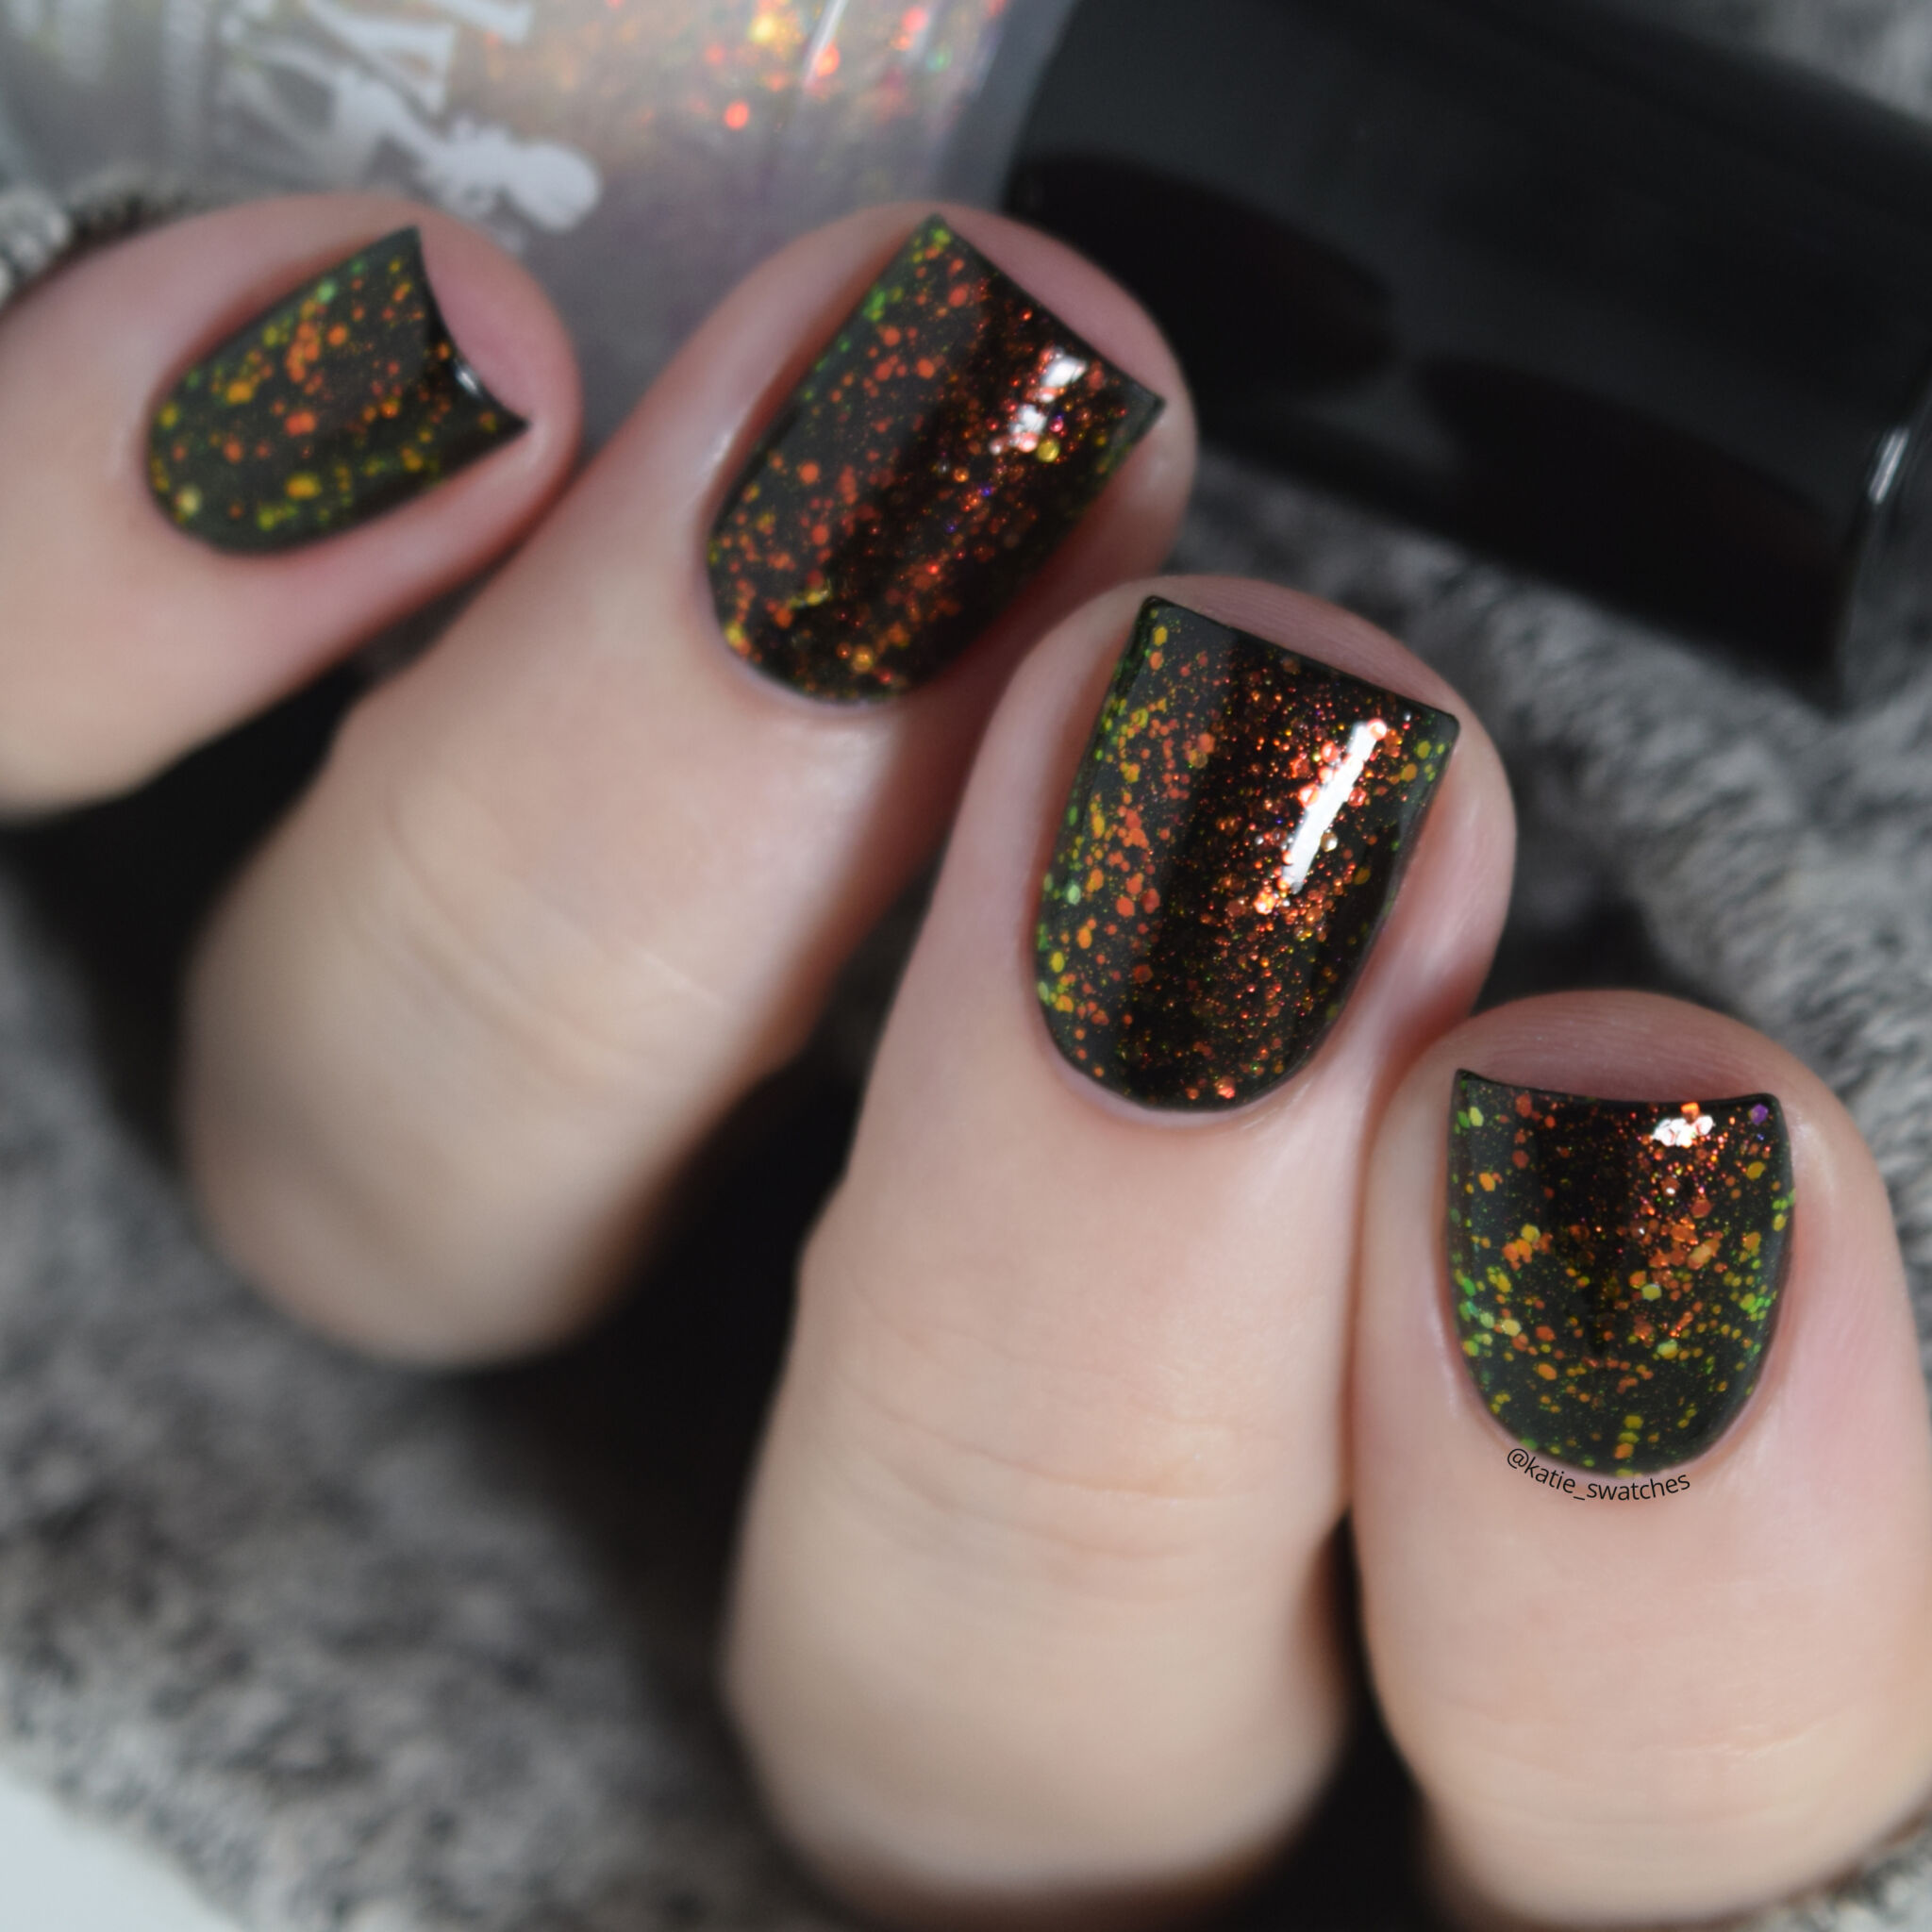 Girly Bits - Tony Danza iridescent colour shifting glitter nail polish topper layered over Girly Bits Little Black Dress (black creme nail polish)